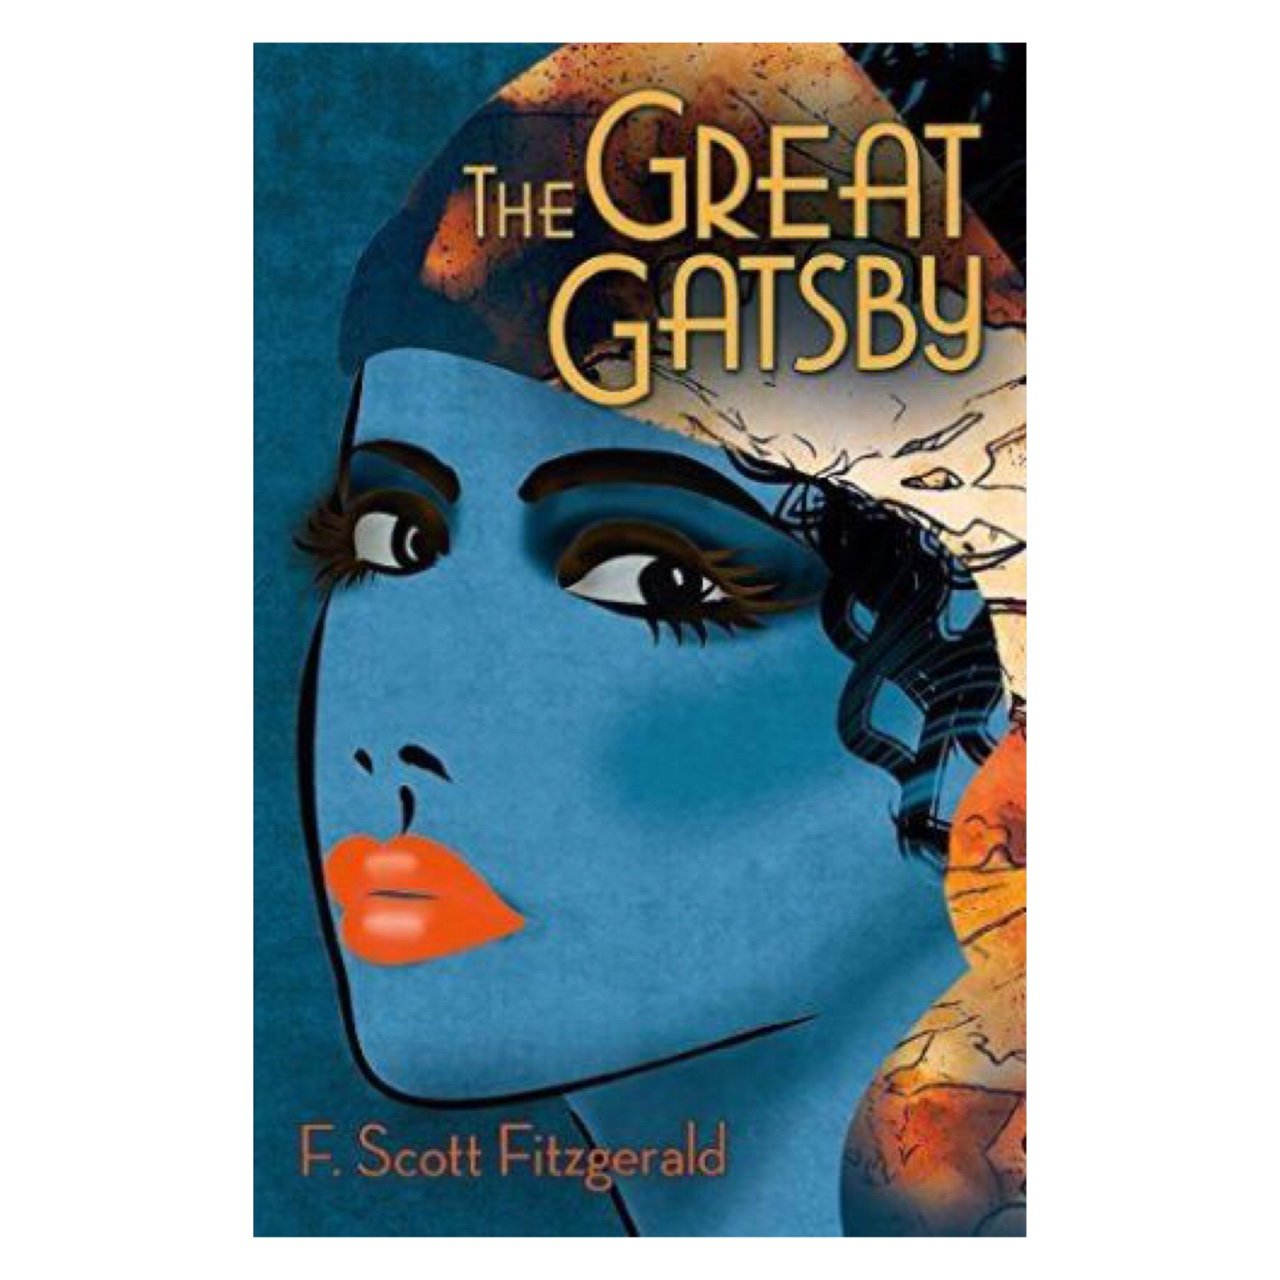 a comparison of the great gatsby by f scott fitzgerald and the stone angel by margaret laurence The mysterious gatsby in the great gatsby, by f scott fitzgerald essay - in the novel, the great gatsby, by f scott fitzgerald, we know that gatsby, the main character, is a mysterious man who doesn't seem to show much personal growth throughout this book.